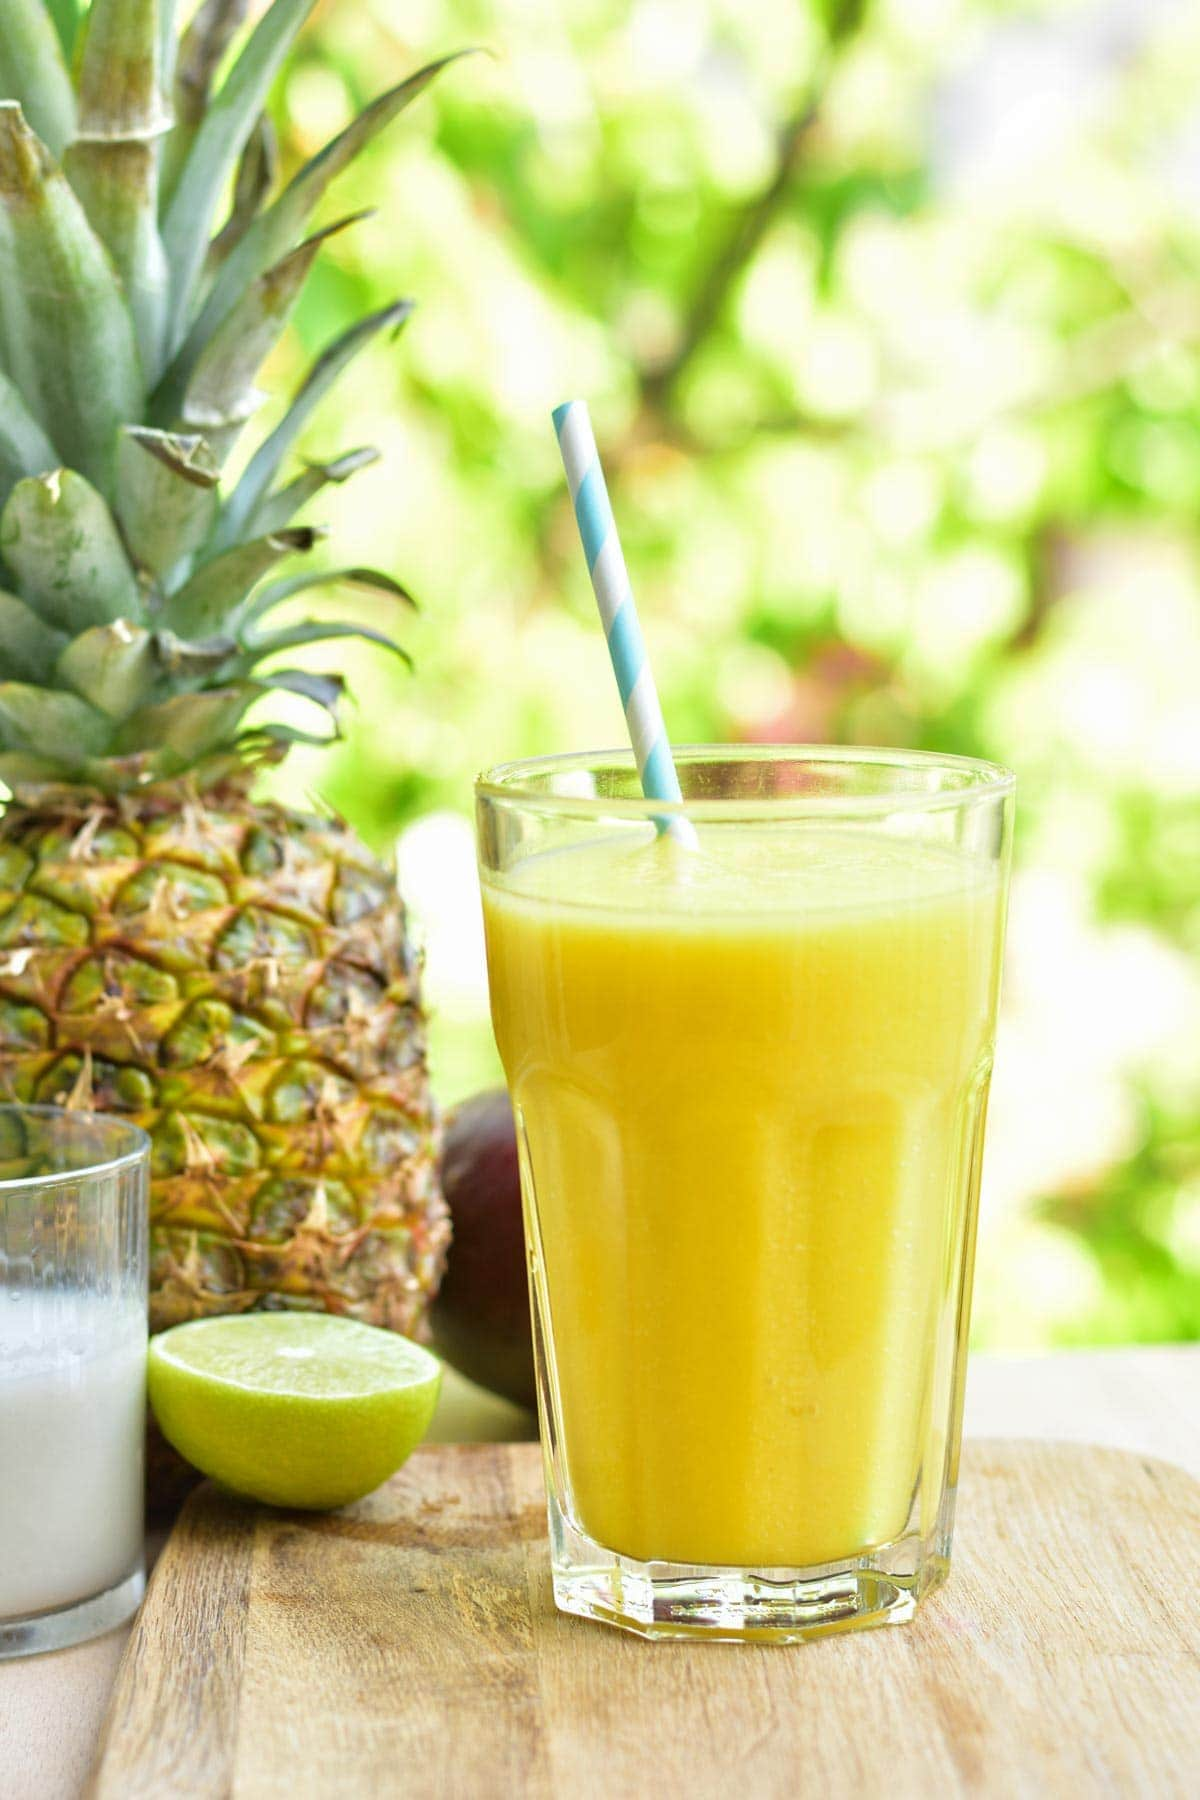 Pineapple mango coconut smoothie in a glass on a chopping board